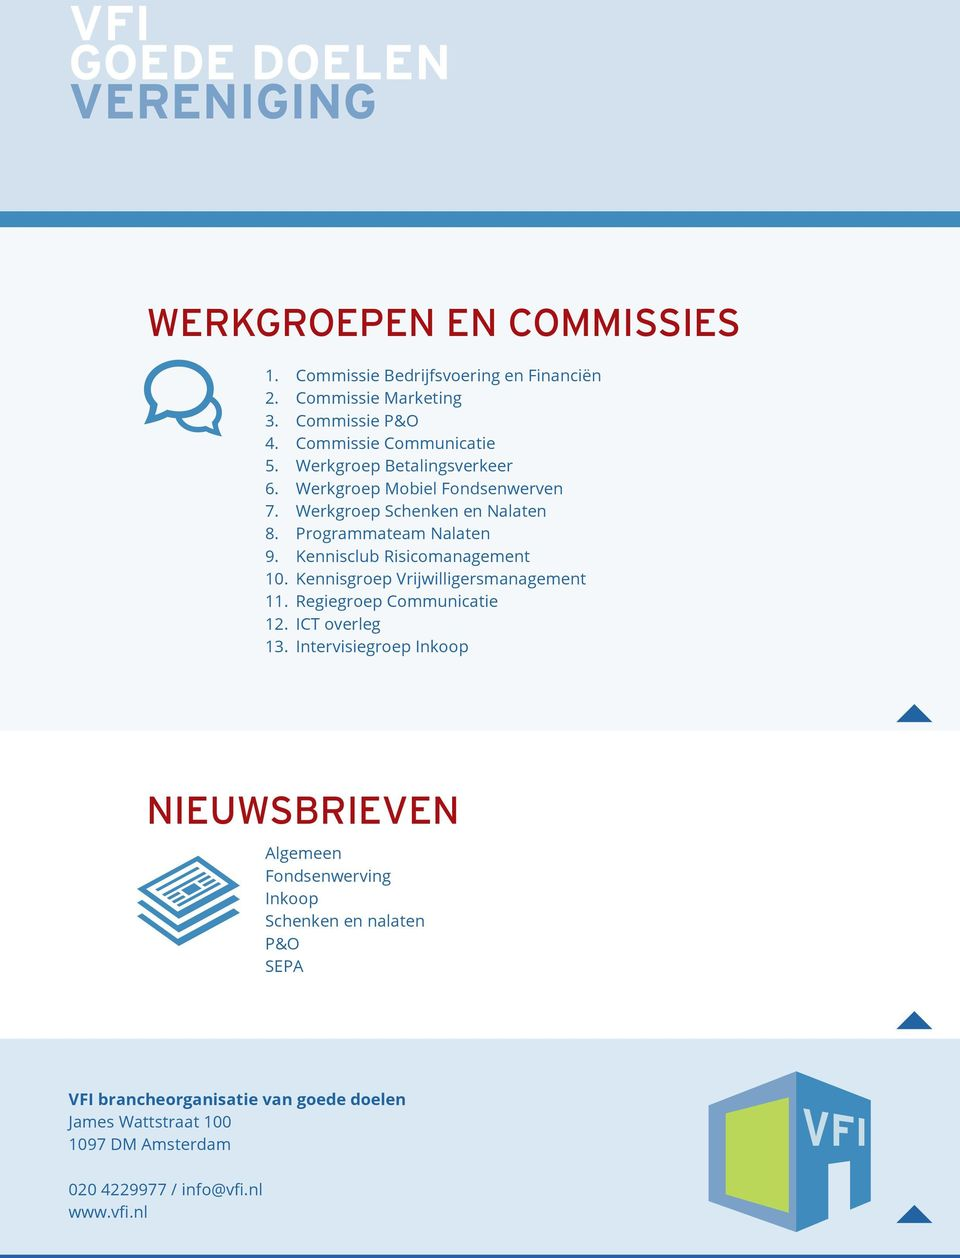 Kennisclub Risicomanagement 10. Kennisgroep Vrijwilligersmanagement 11. Regiegroep Communicatie 12. ICT overleg 13.